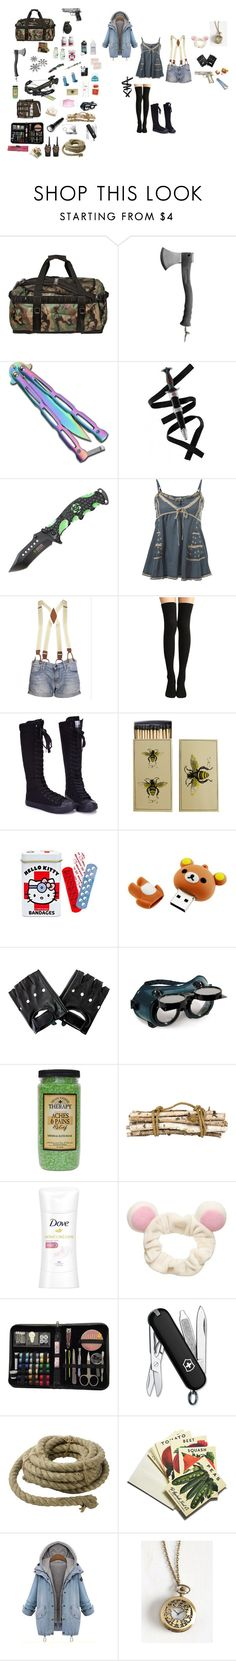 """""""""""Psst.. Cain.. lower the ladder.."""" Starfighter Apocalypse AU"""" by shinakisenpai ❤ liked on Polyvore featuring The North Face, Holster, Miss Selfridge, Joe's Jeans, Hydrogen, Hello Kitty, Jayson Home, Dove, Victorinox Swiss Army and HomArt"""